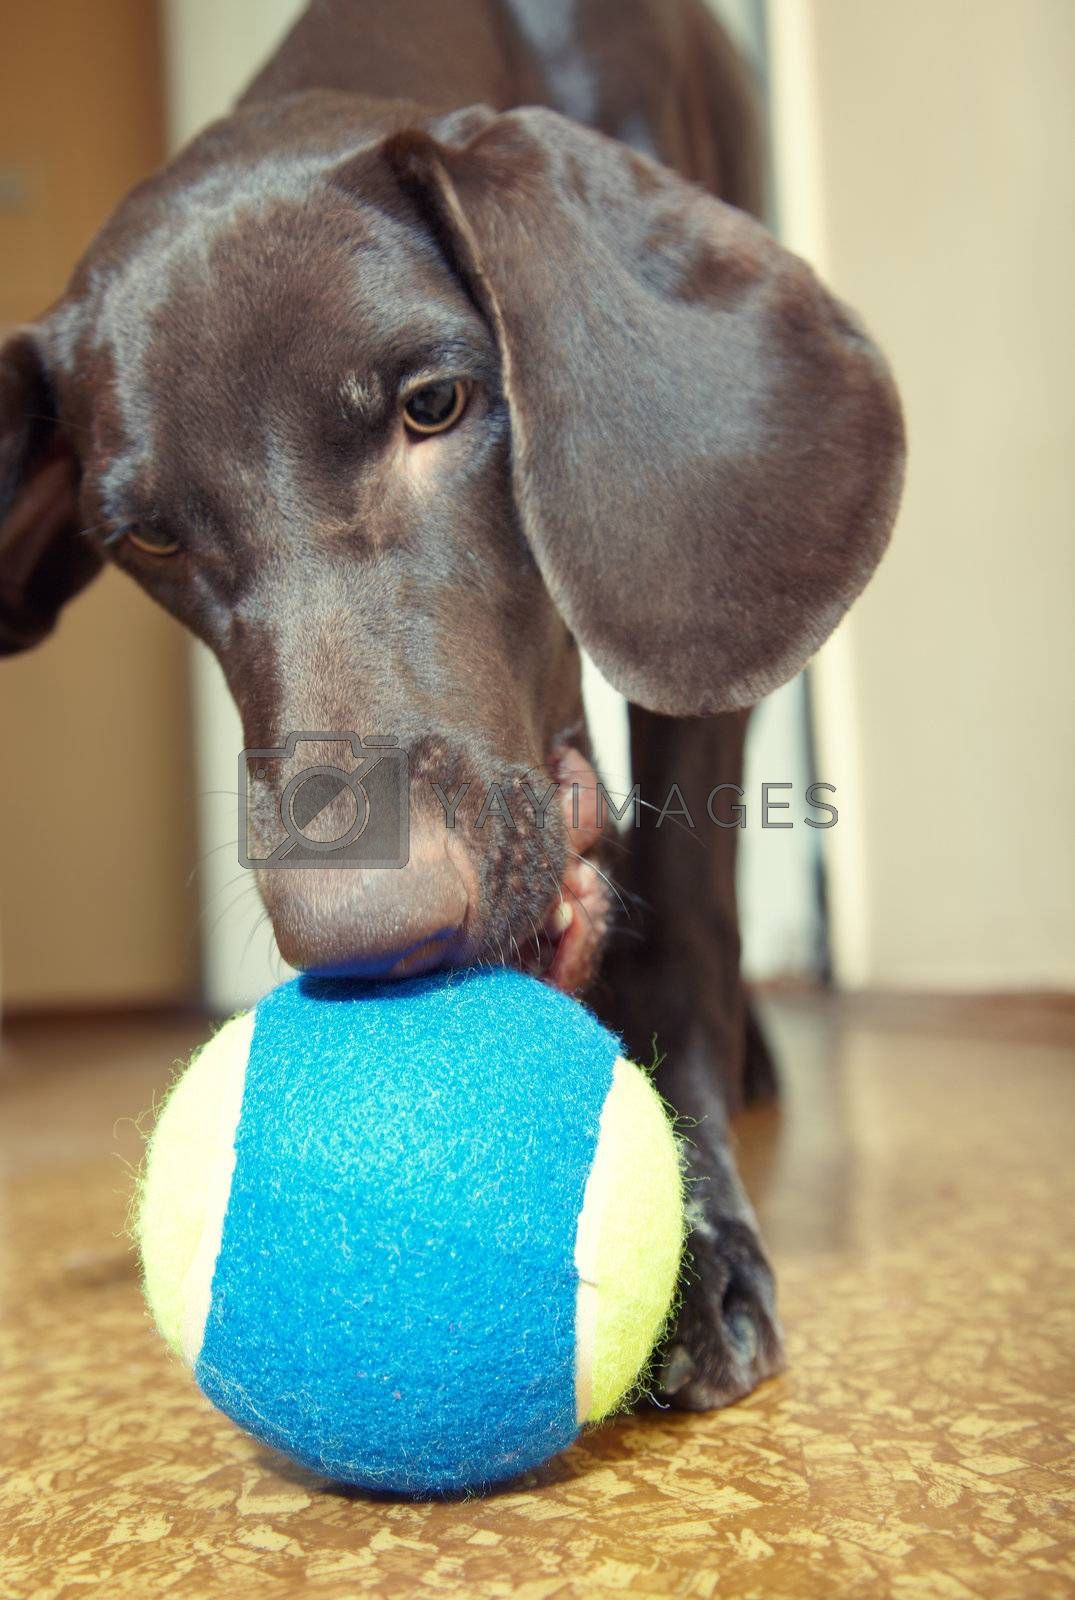 Young dog playing indoors with colorful tennis ball. Natural light and colors